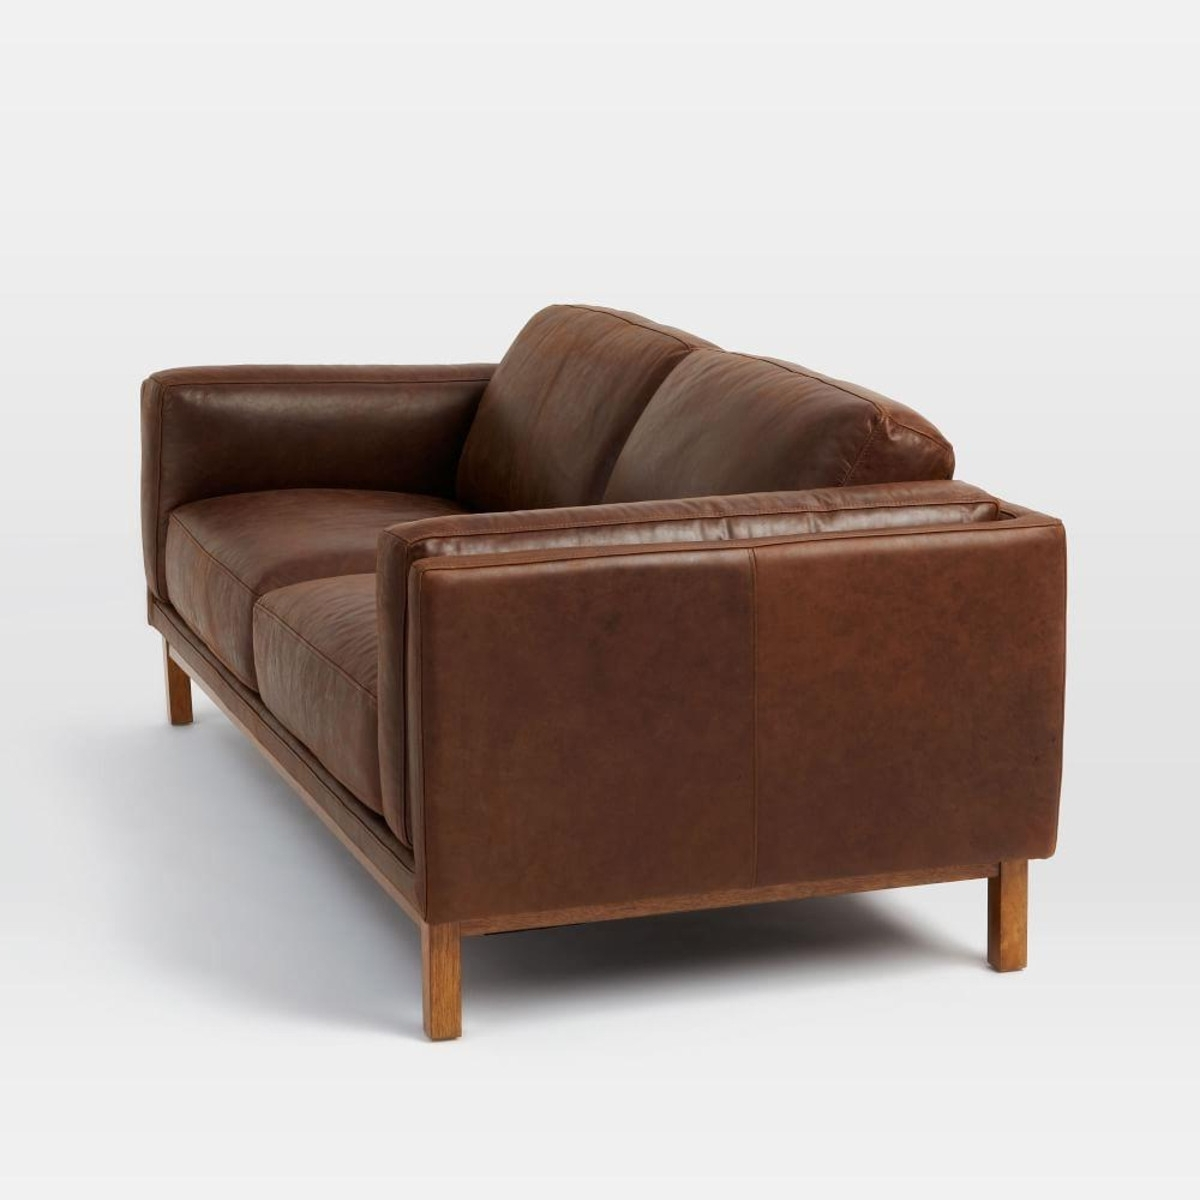 Aniline Leather Sofas – Fjellkjeden Pertaining To Most Popular Aniline Leather Sofas (View 13 of 15)